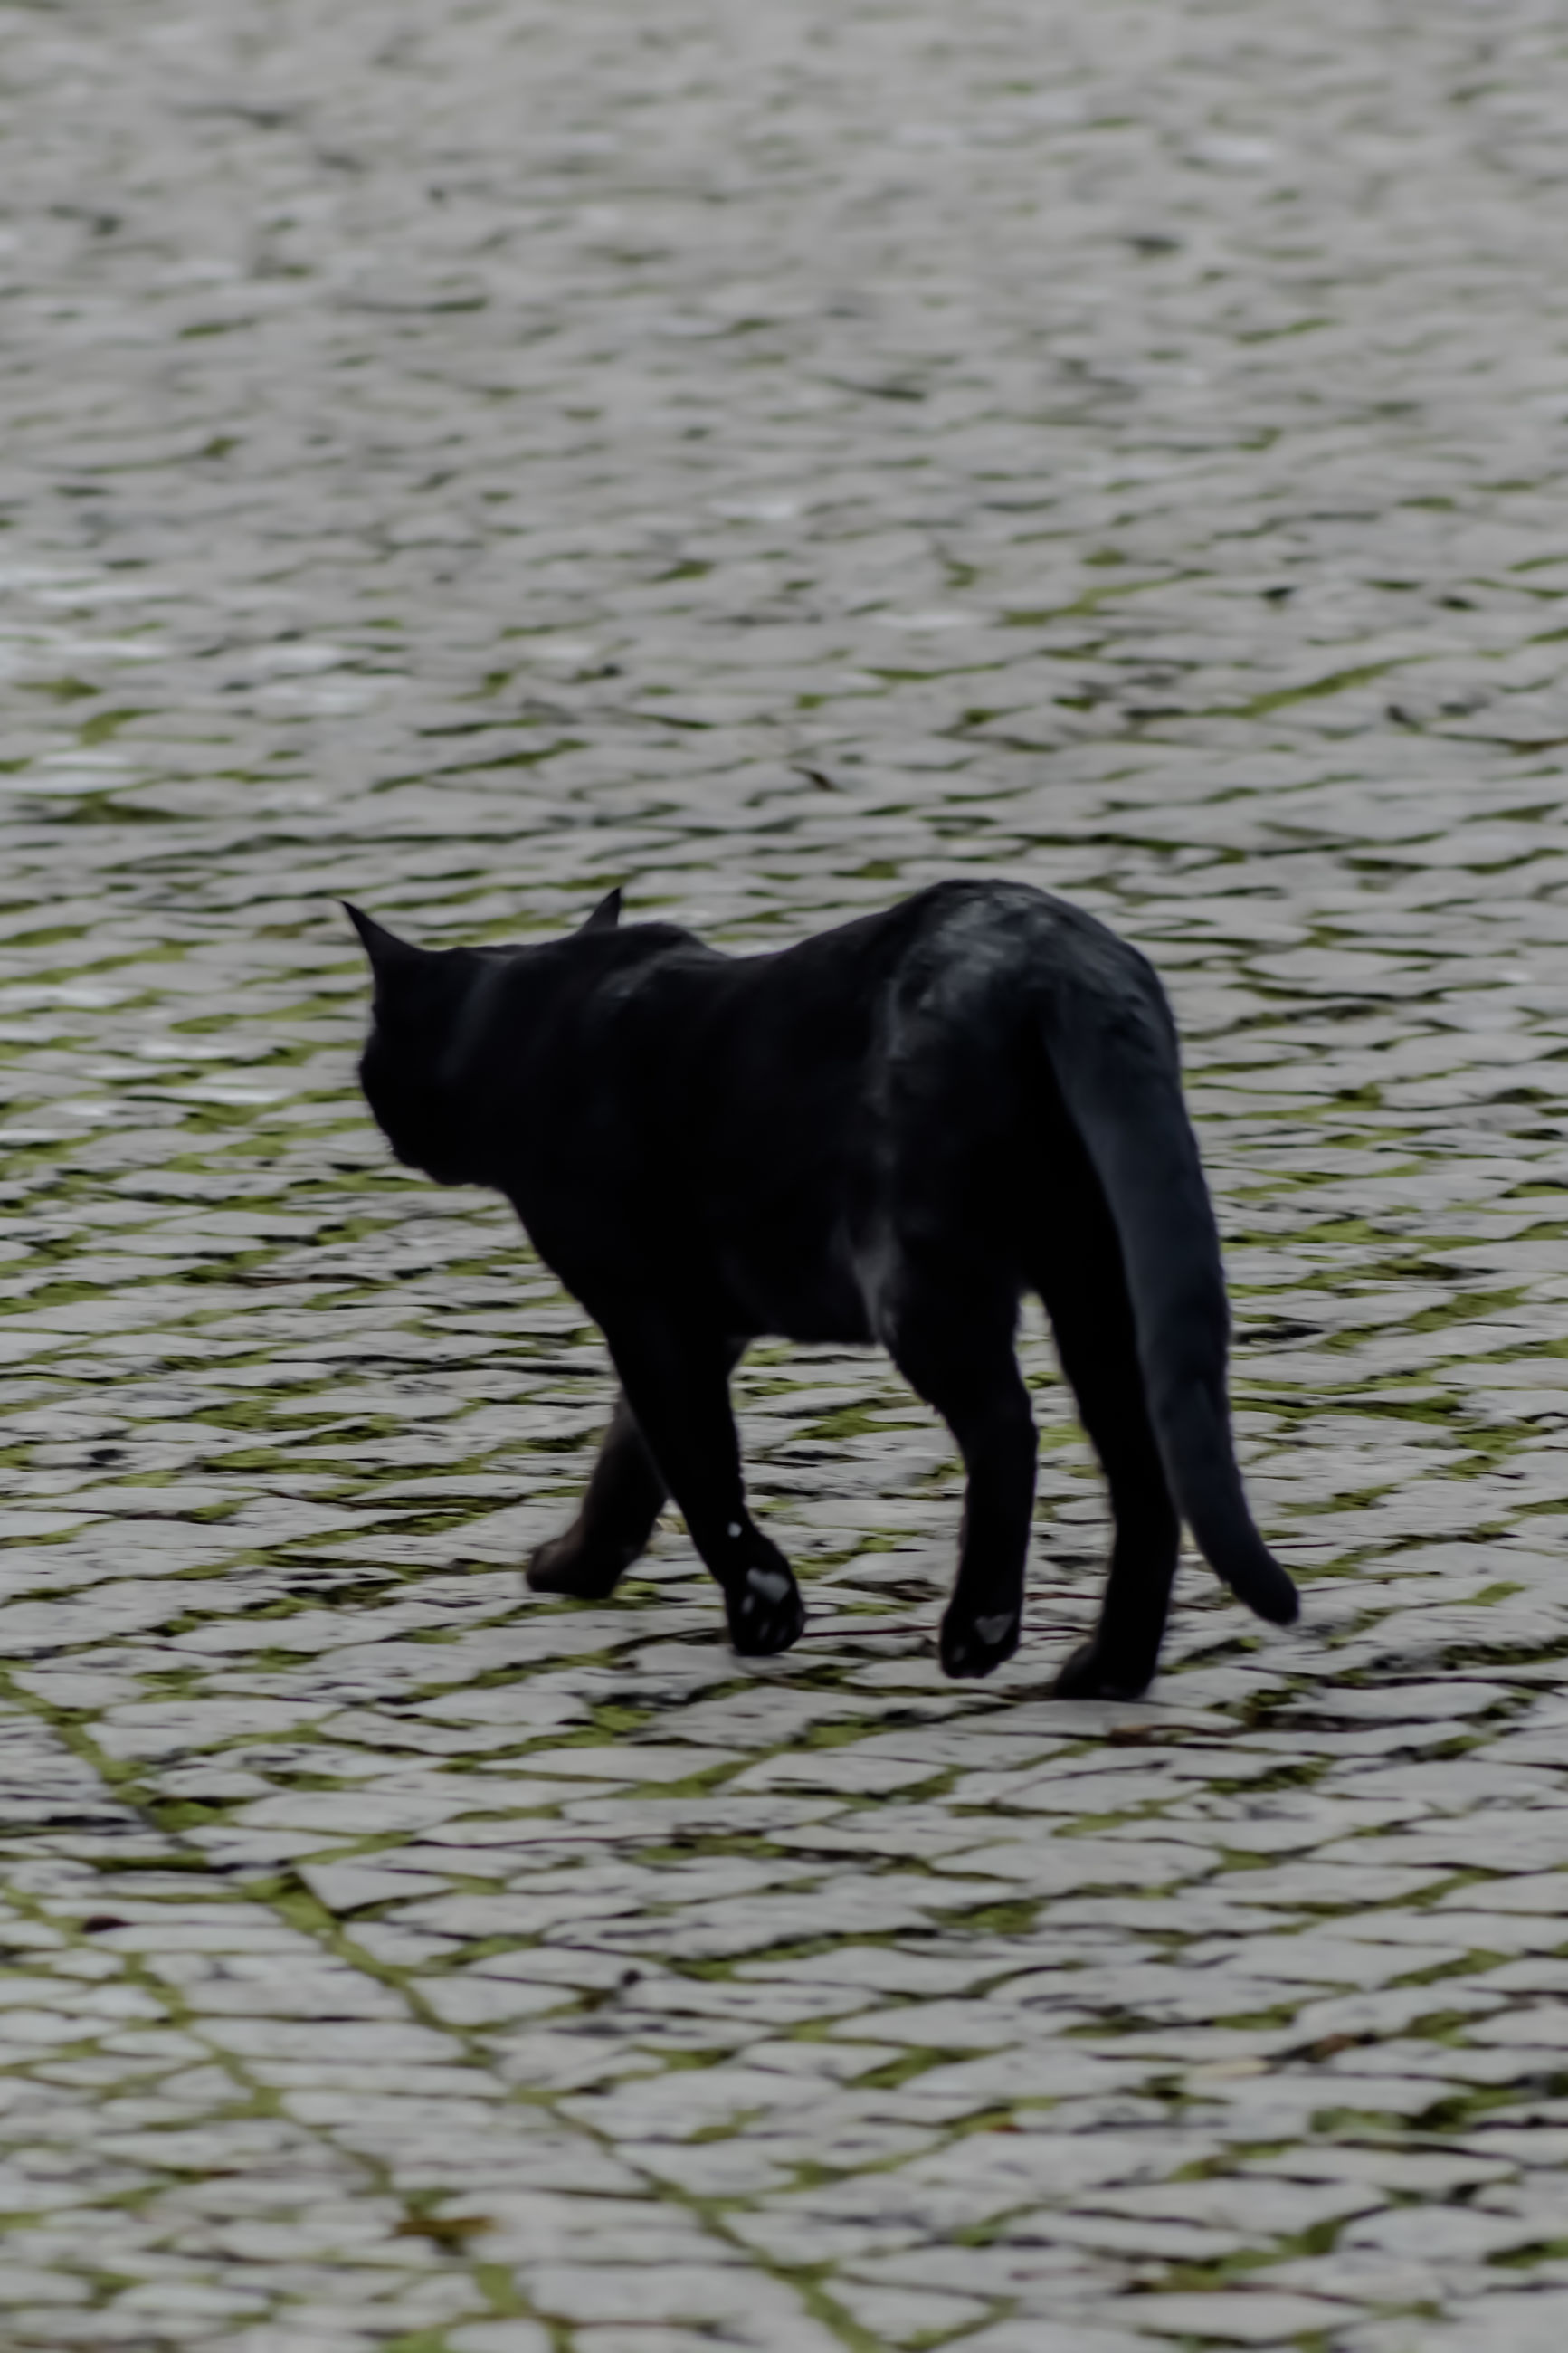 animal themes, one animal, mammal, black color, domestic animals, no people, waterfront, water, nature, outdoors, day, pets